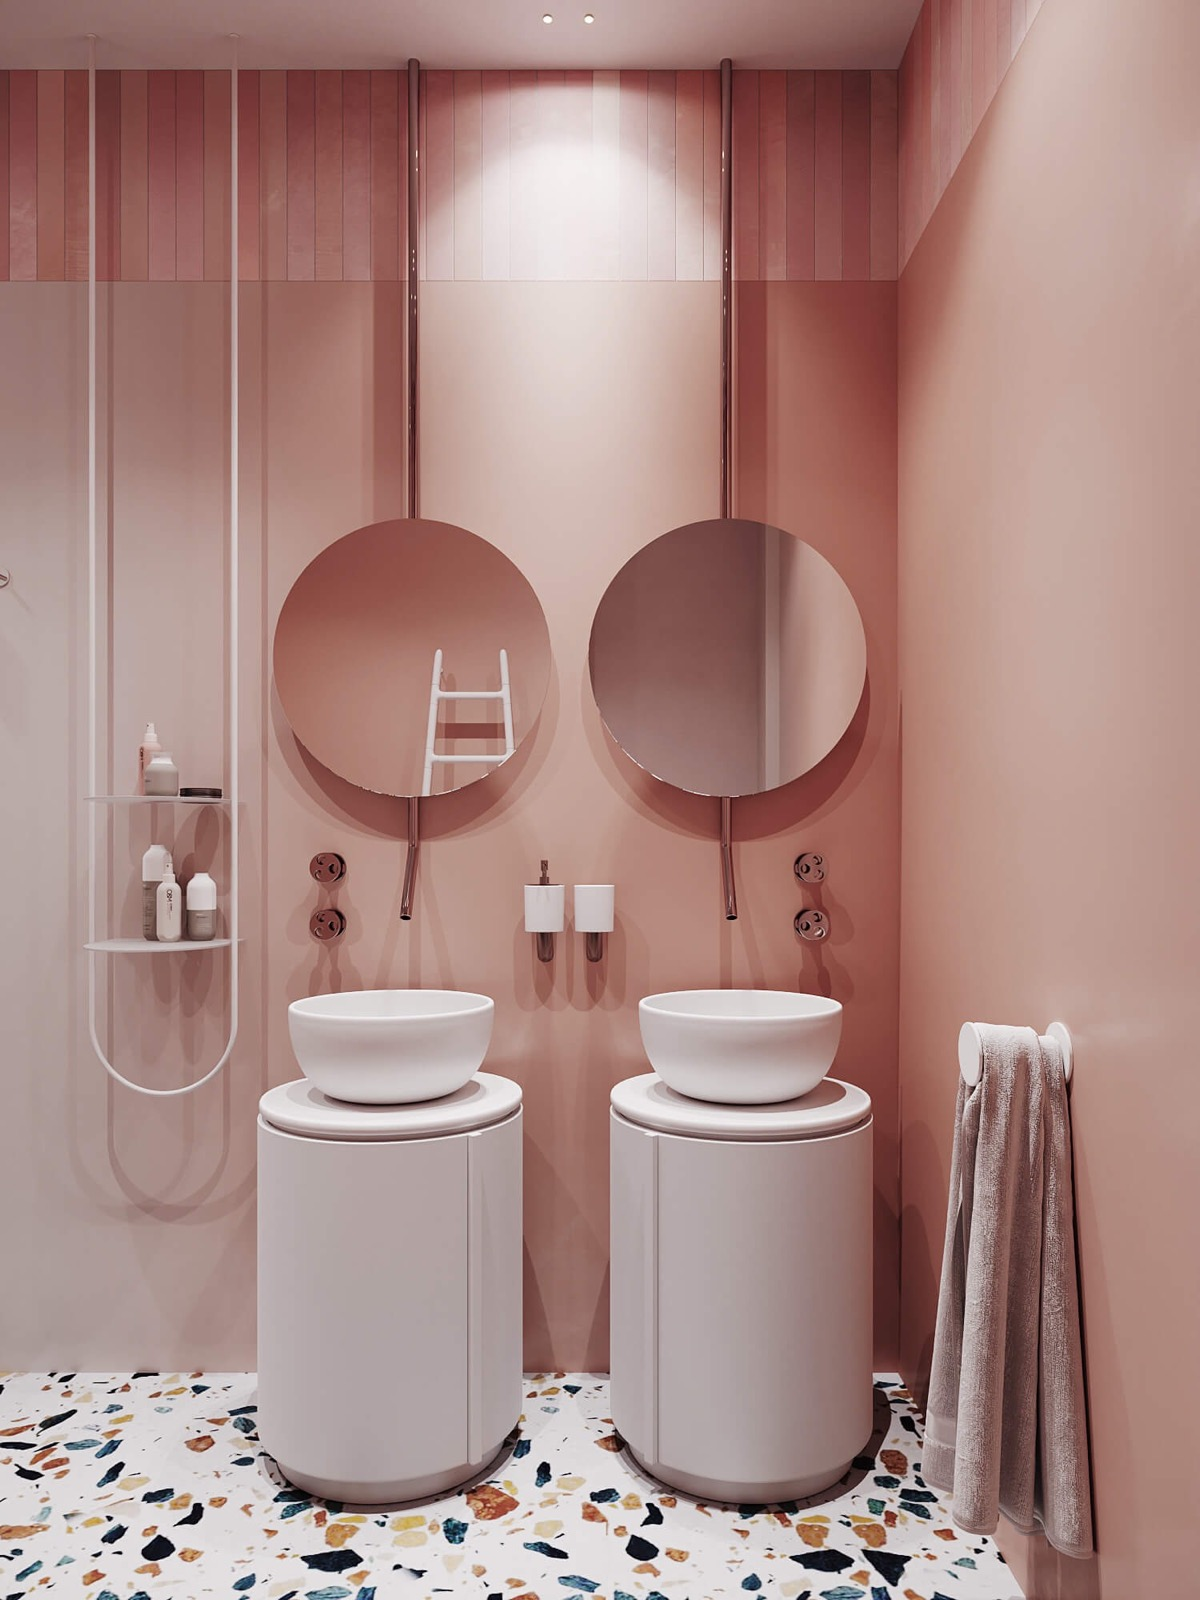 4 Pink Bathrooms With Tips, Photos And Accessories To Help You